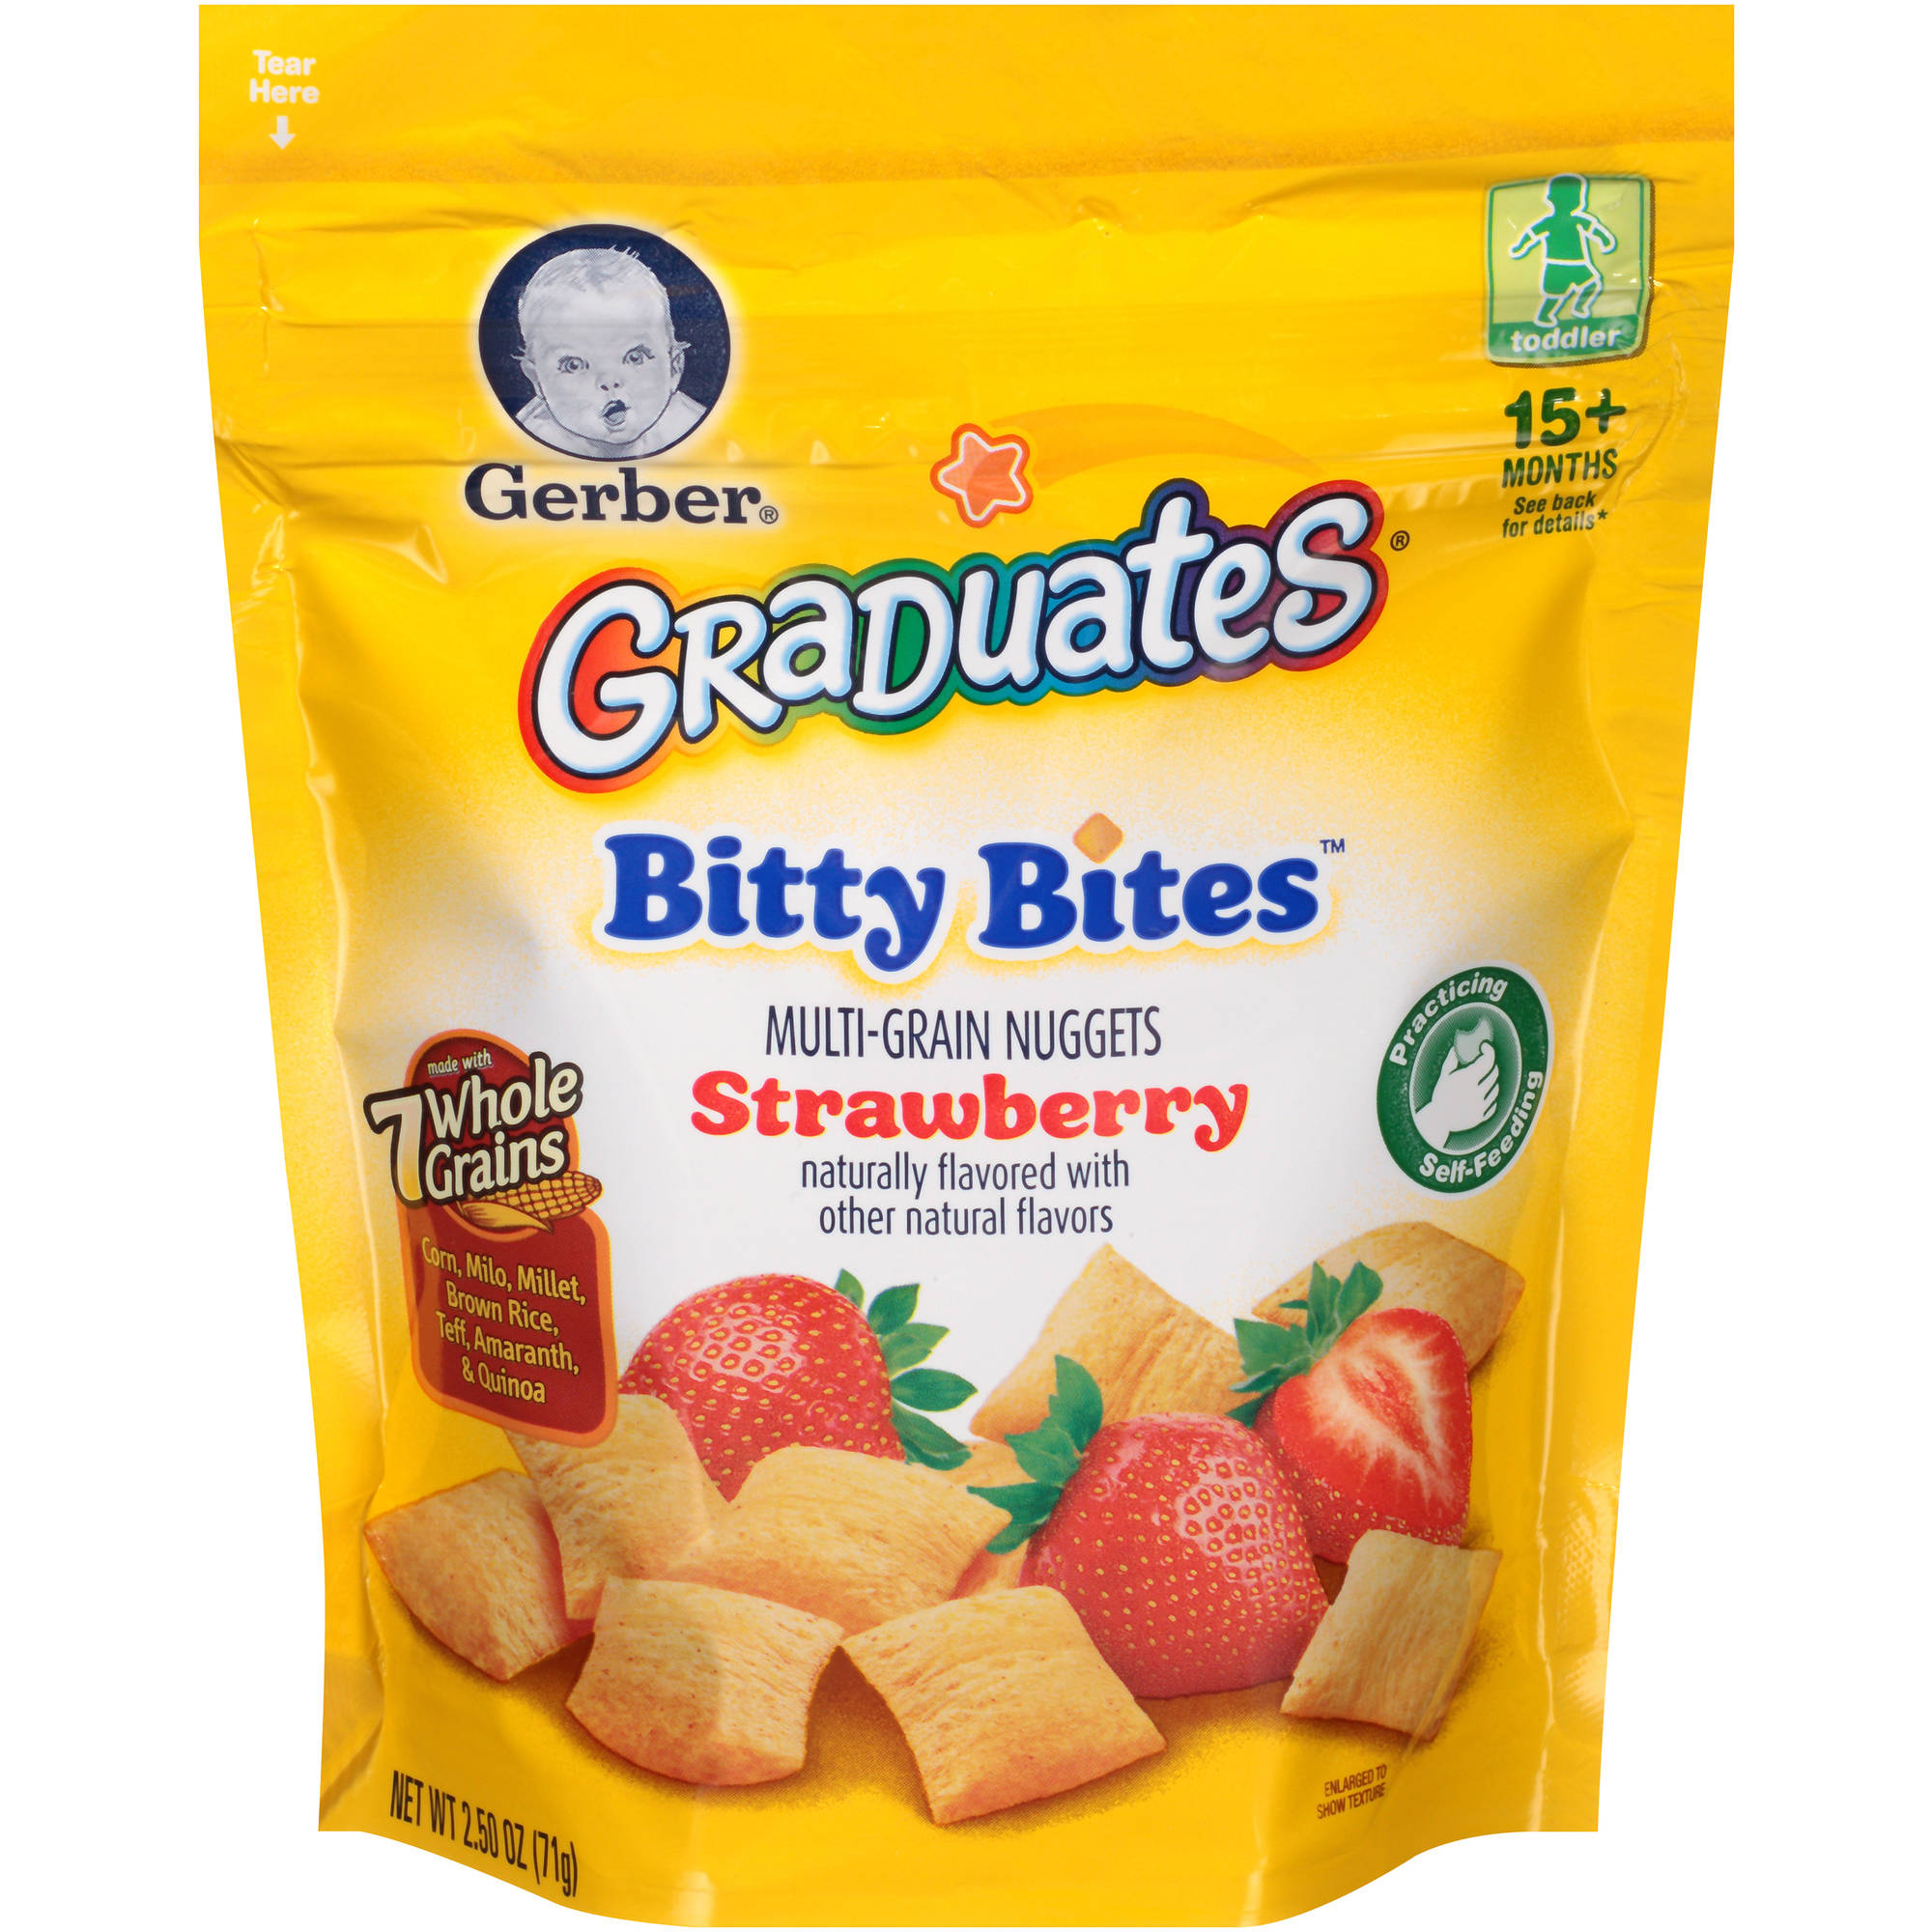 Gerber Graduates Bitty Bites Multi-Grain Nuggets Strawberry, Naturally Flavored with Other Natural Flavors, 2.50 Ounce Bag